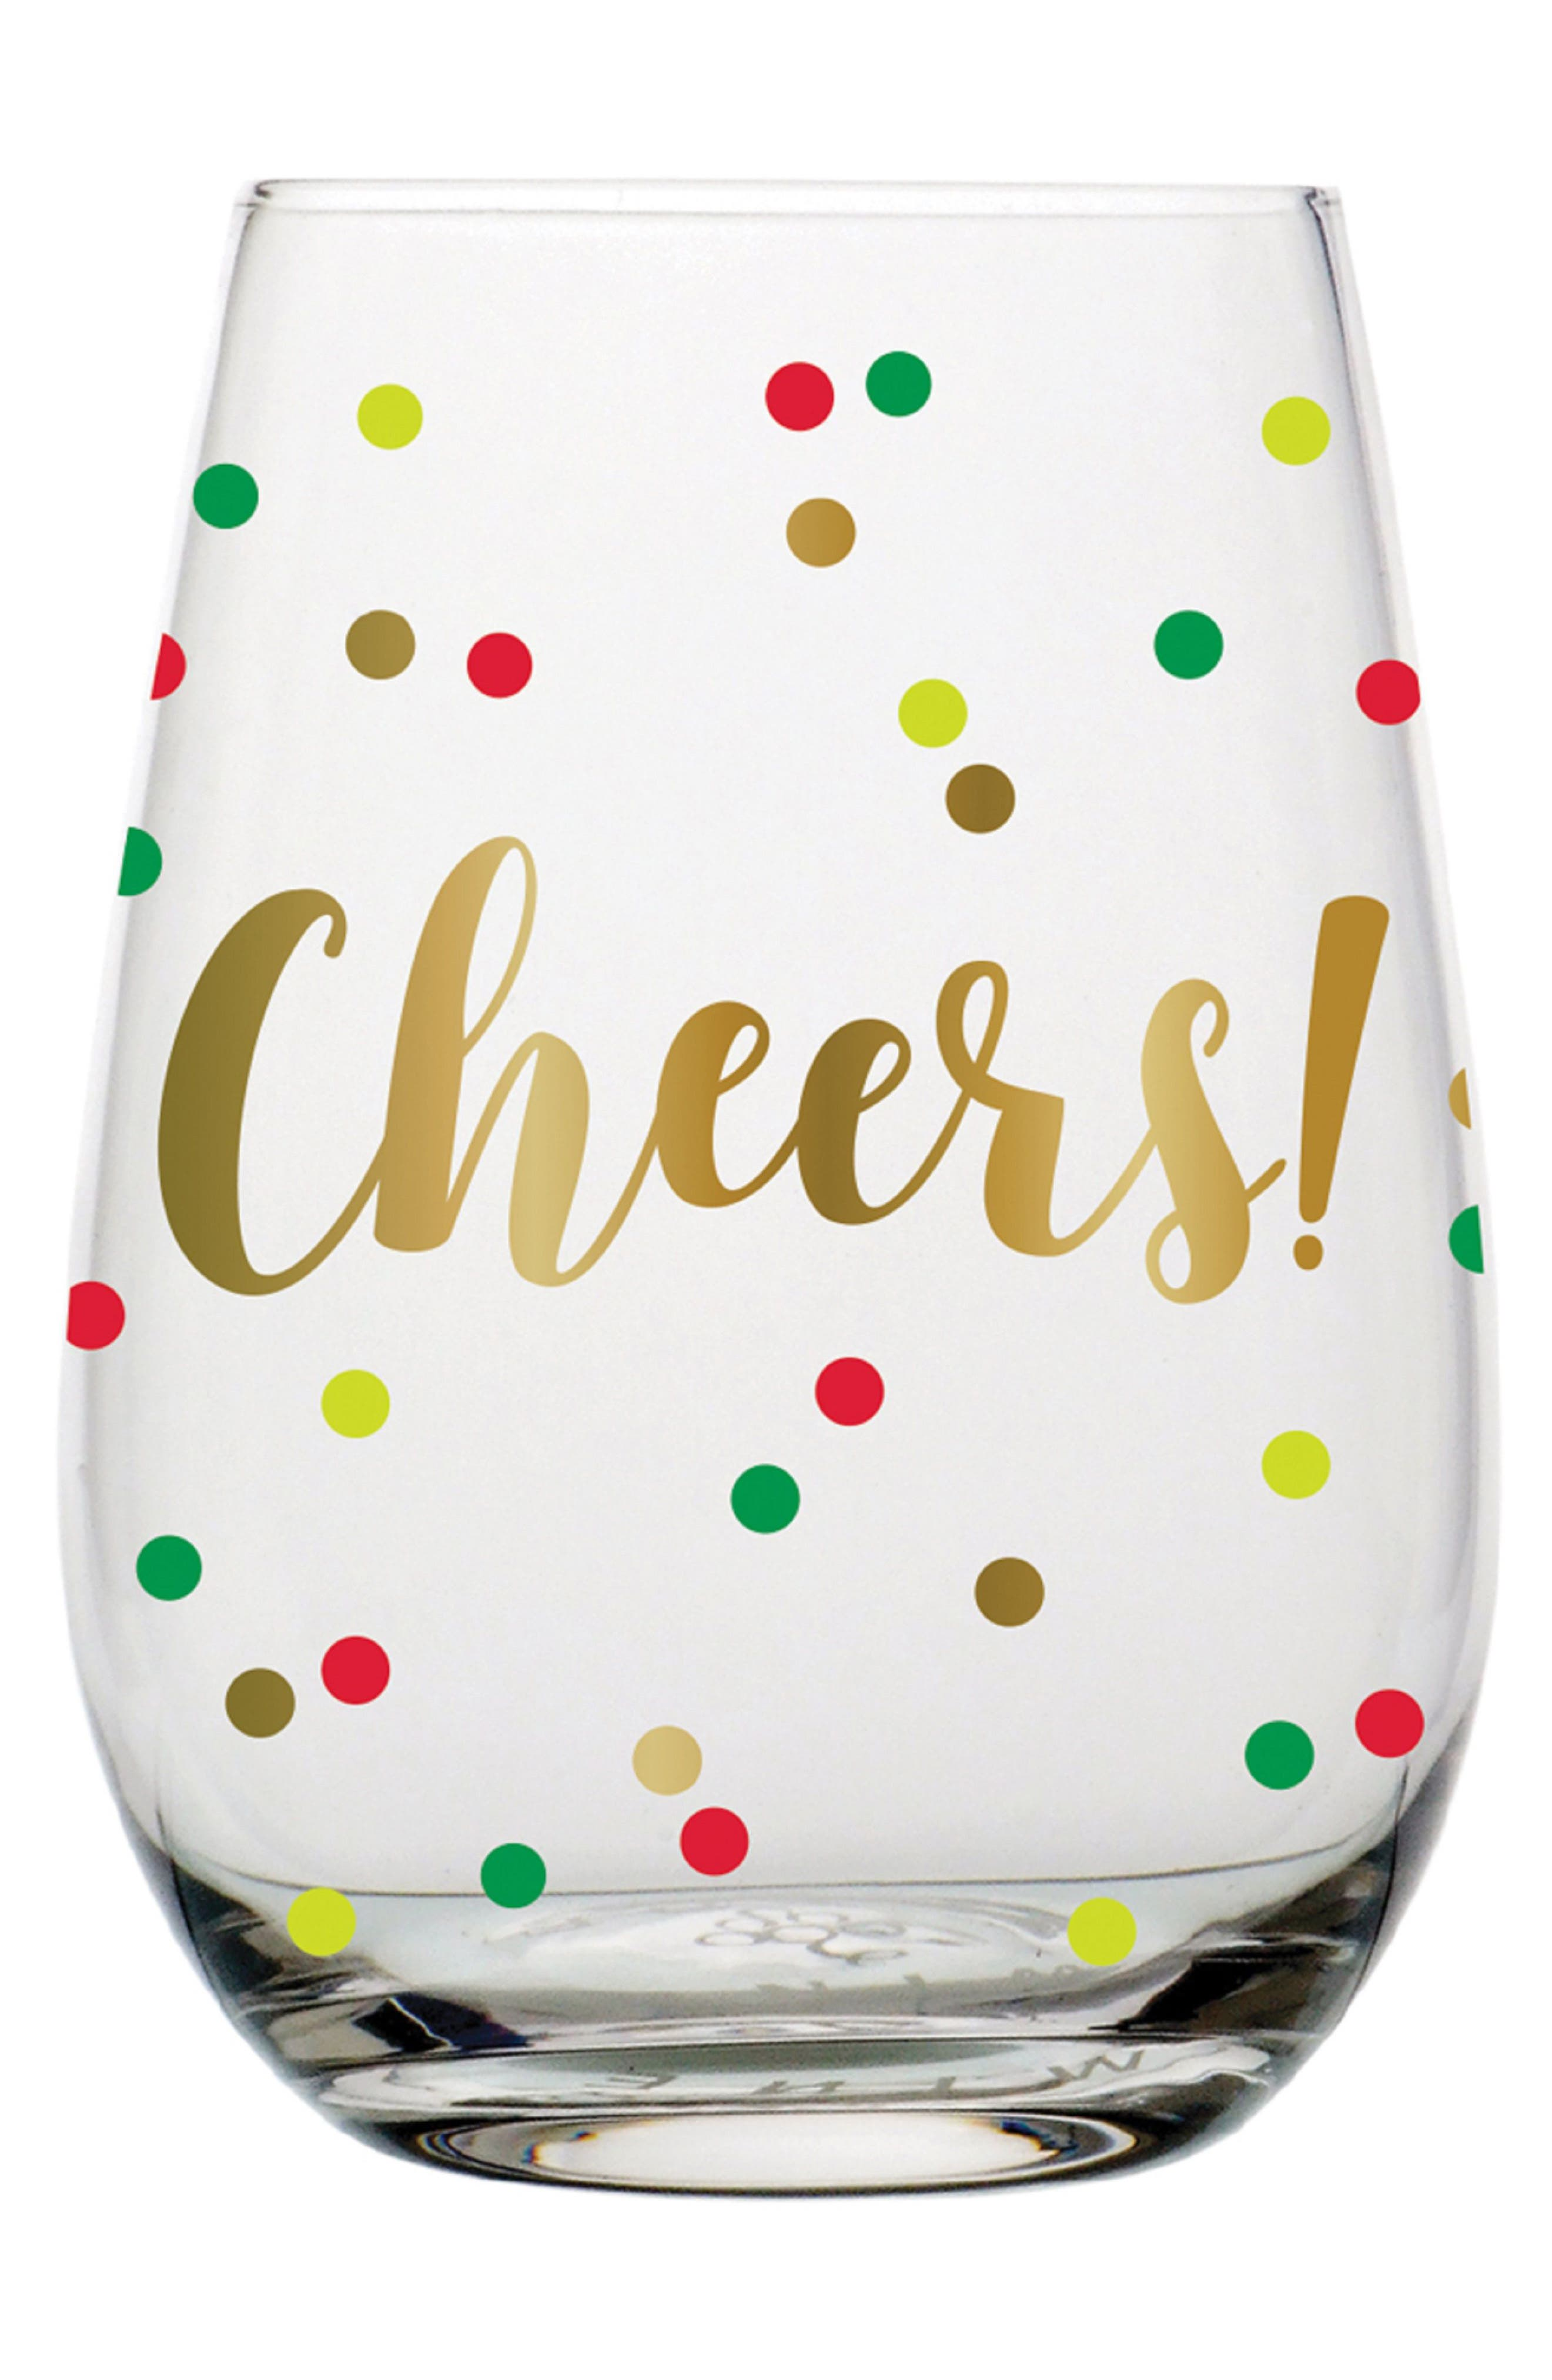 Main Image - Slant Collections Cheers Confetti Stemless Wine Glass